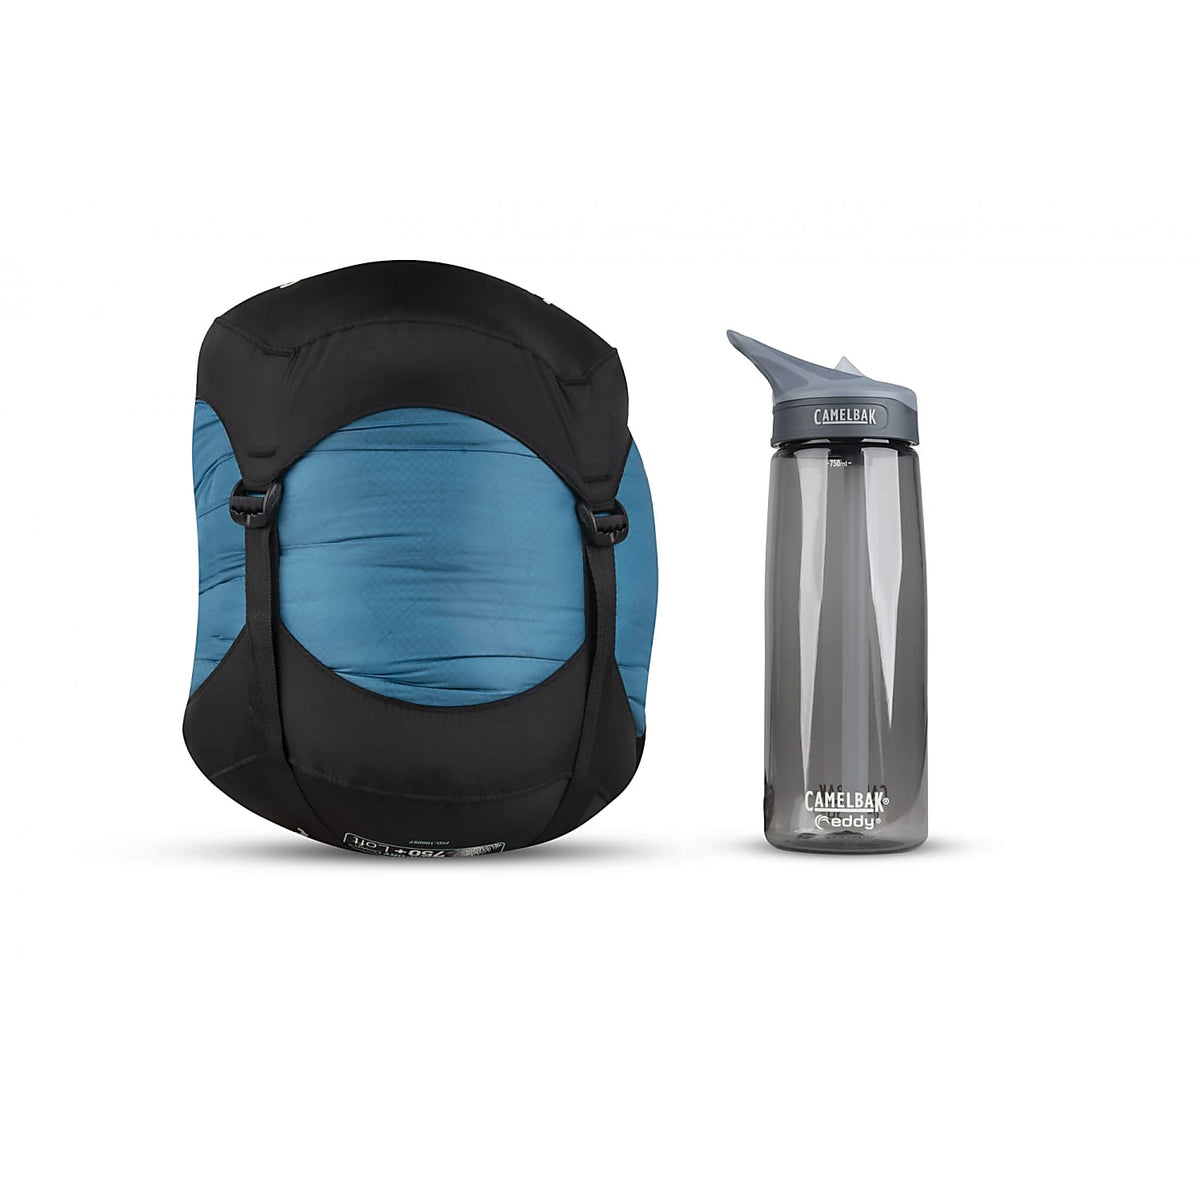 Sea to Summit Altitude II Women's sleeping bag shown in stuff sack next to water bottle for size